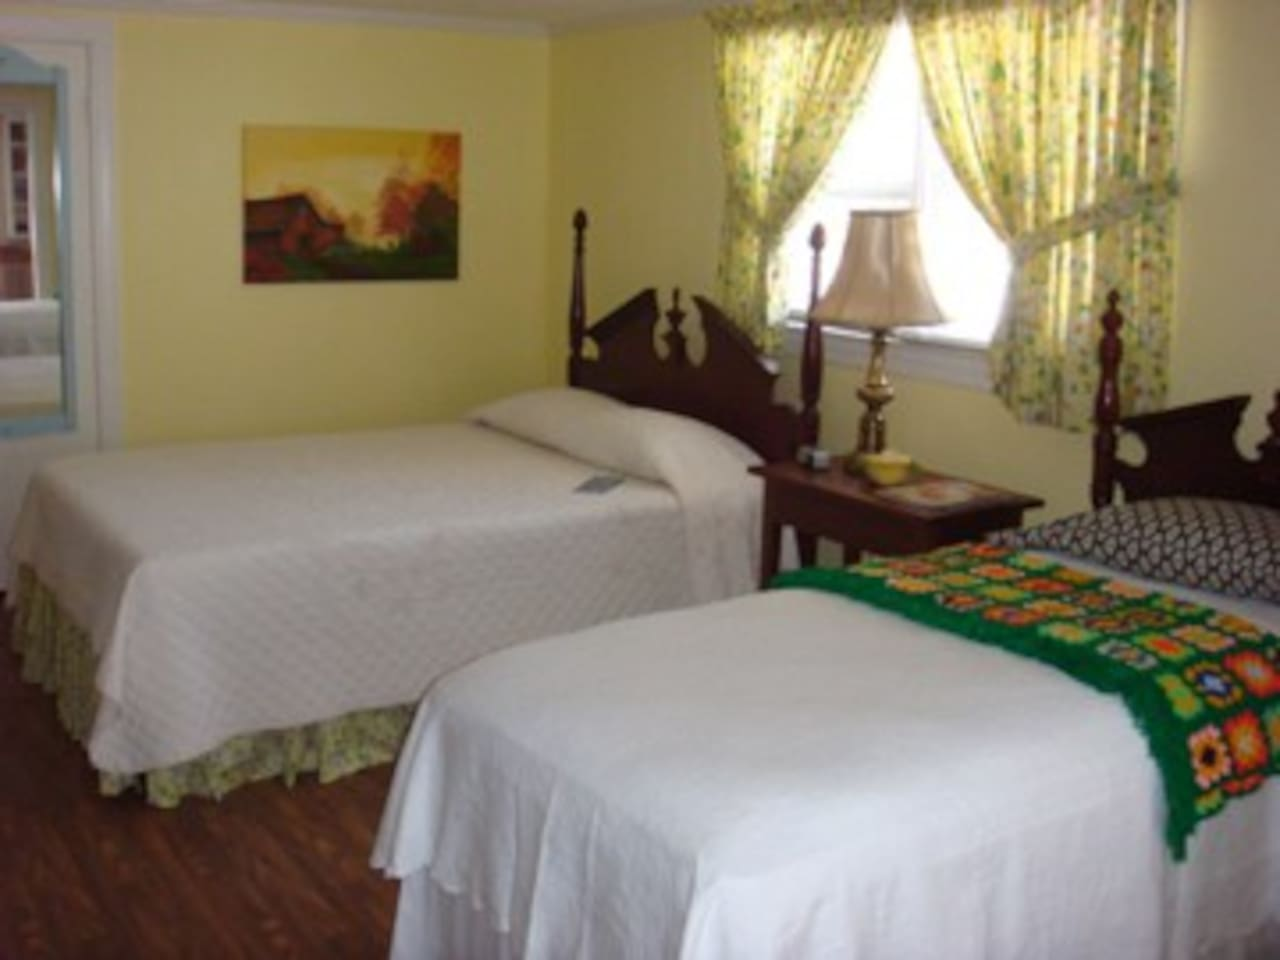 Shine's Suite is located downstairs features a queen, and twin bed. Shine's Suite also has a private bathroom, sunroom and a deck with access to the patio area!